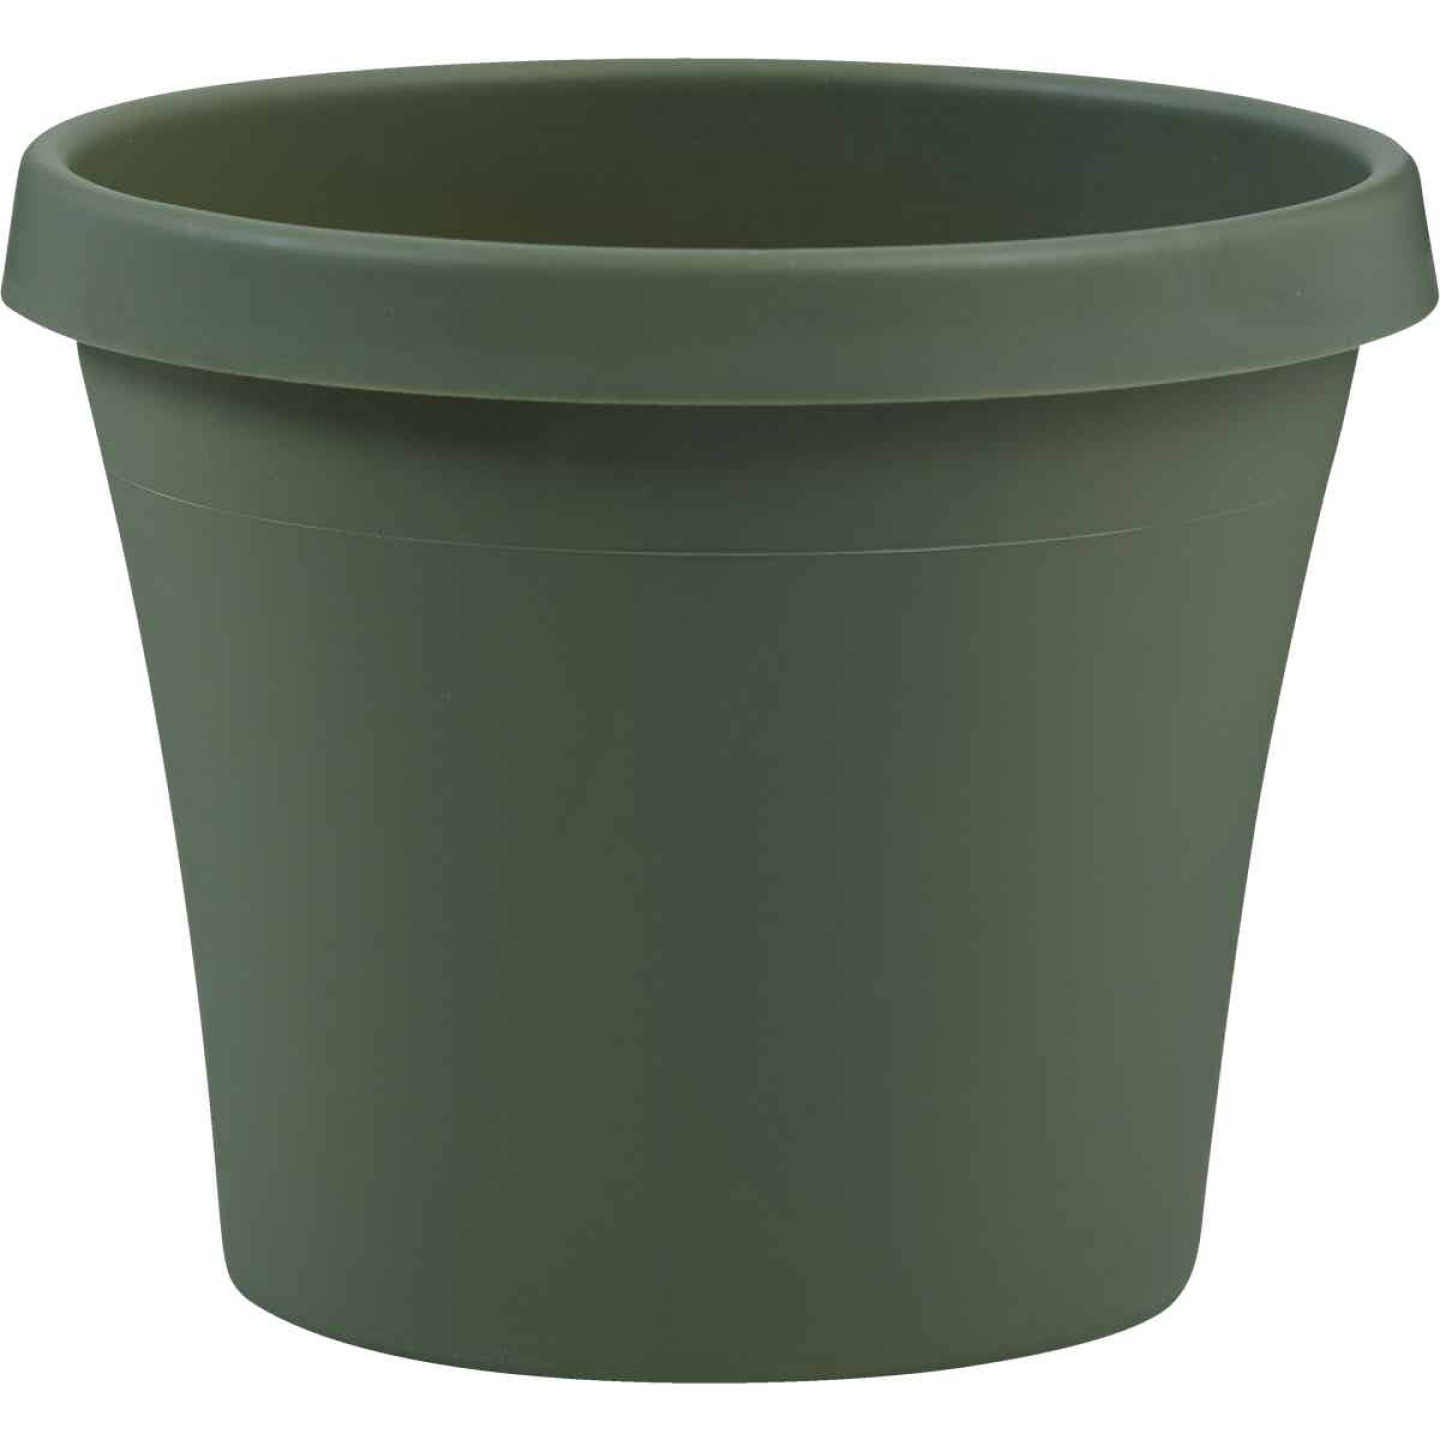 Bloem Terra Living Green 14.17 In. H. x 16 In. Dia. Polypropylene Planter Image 1